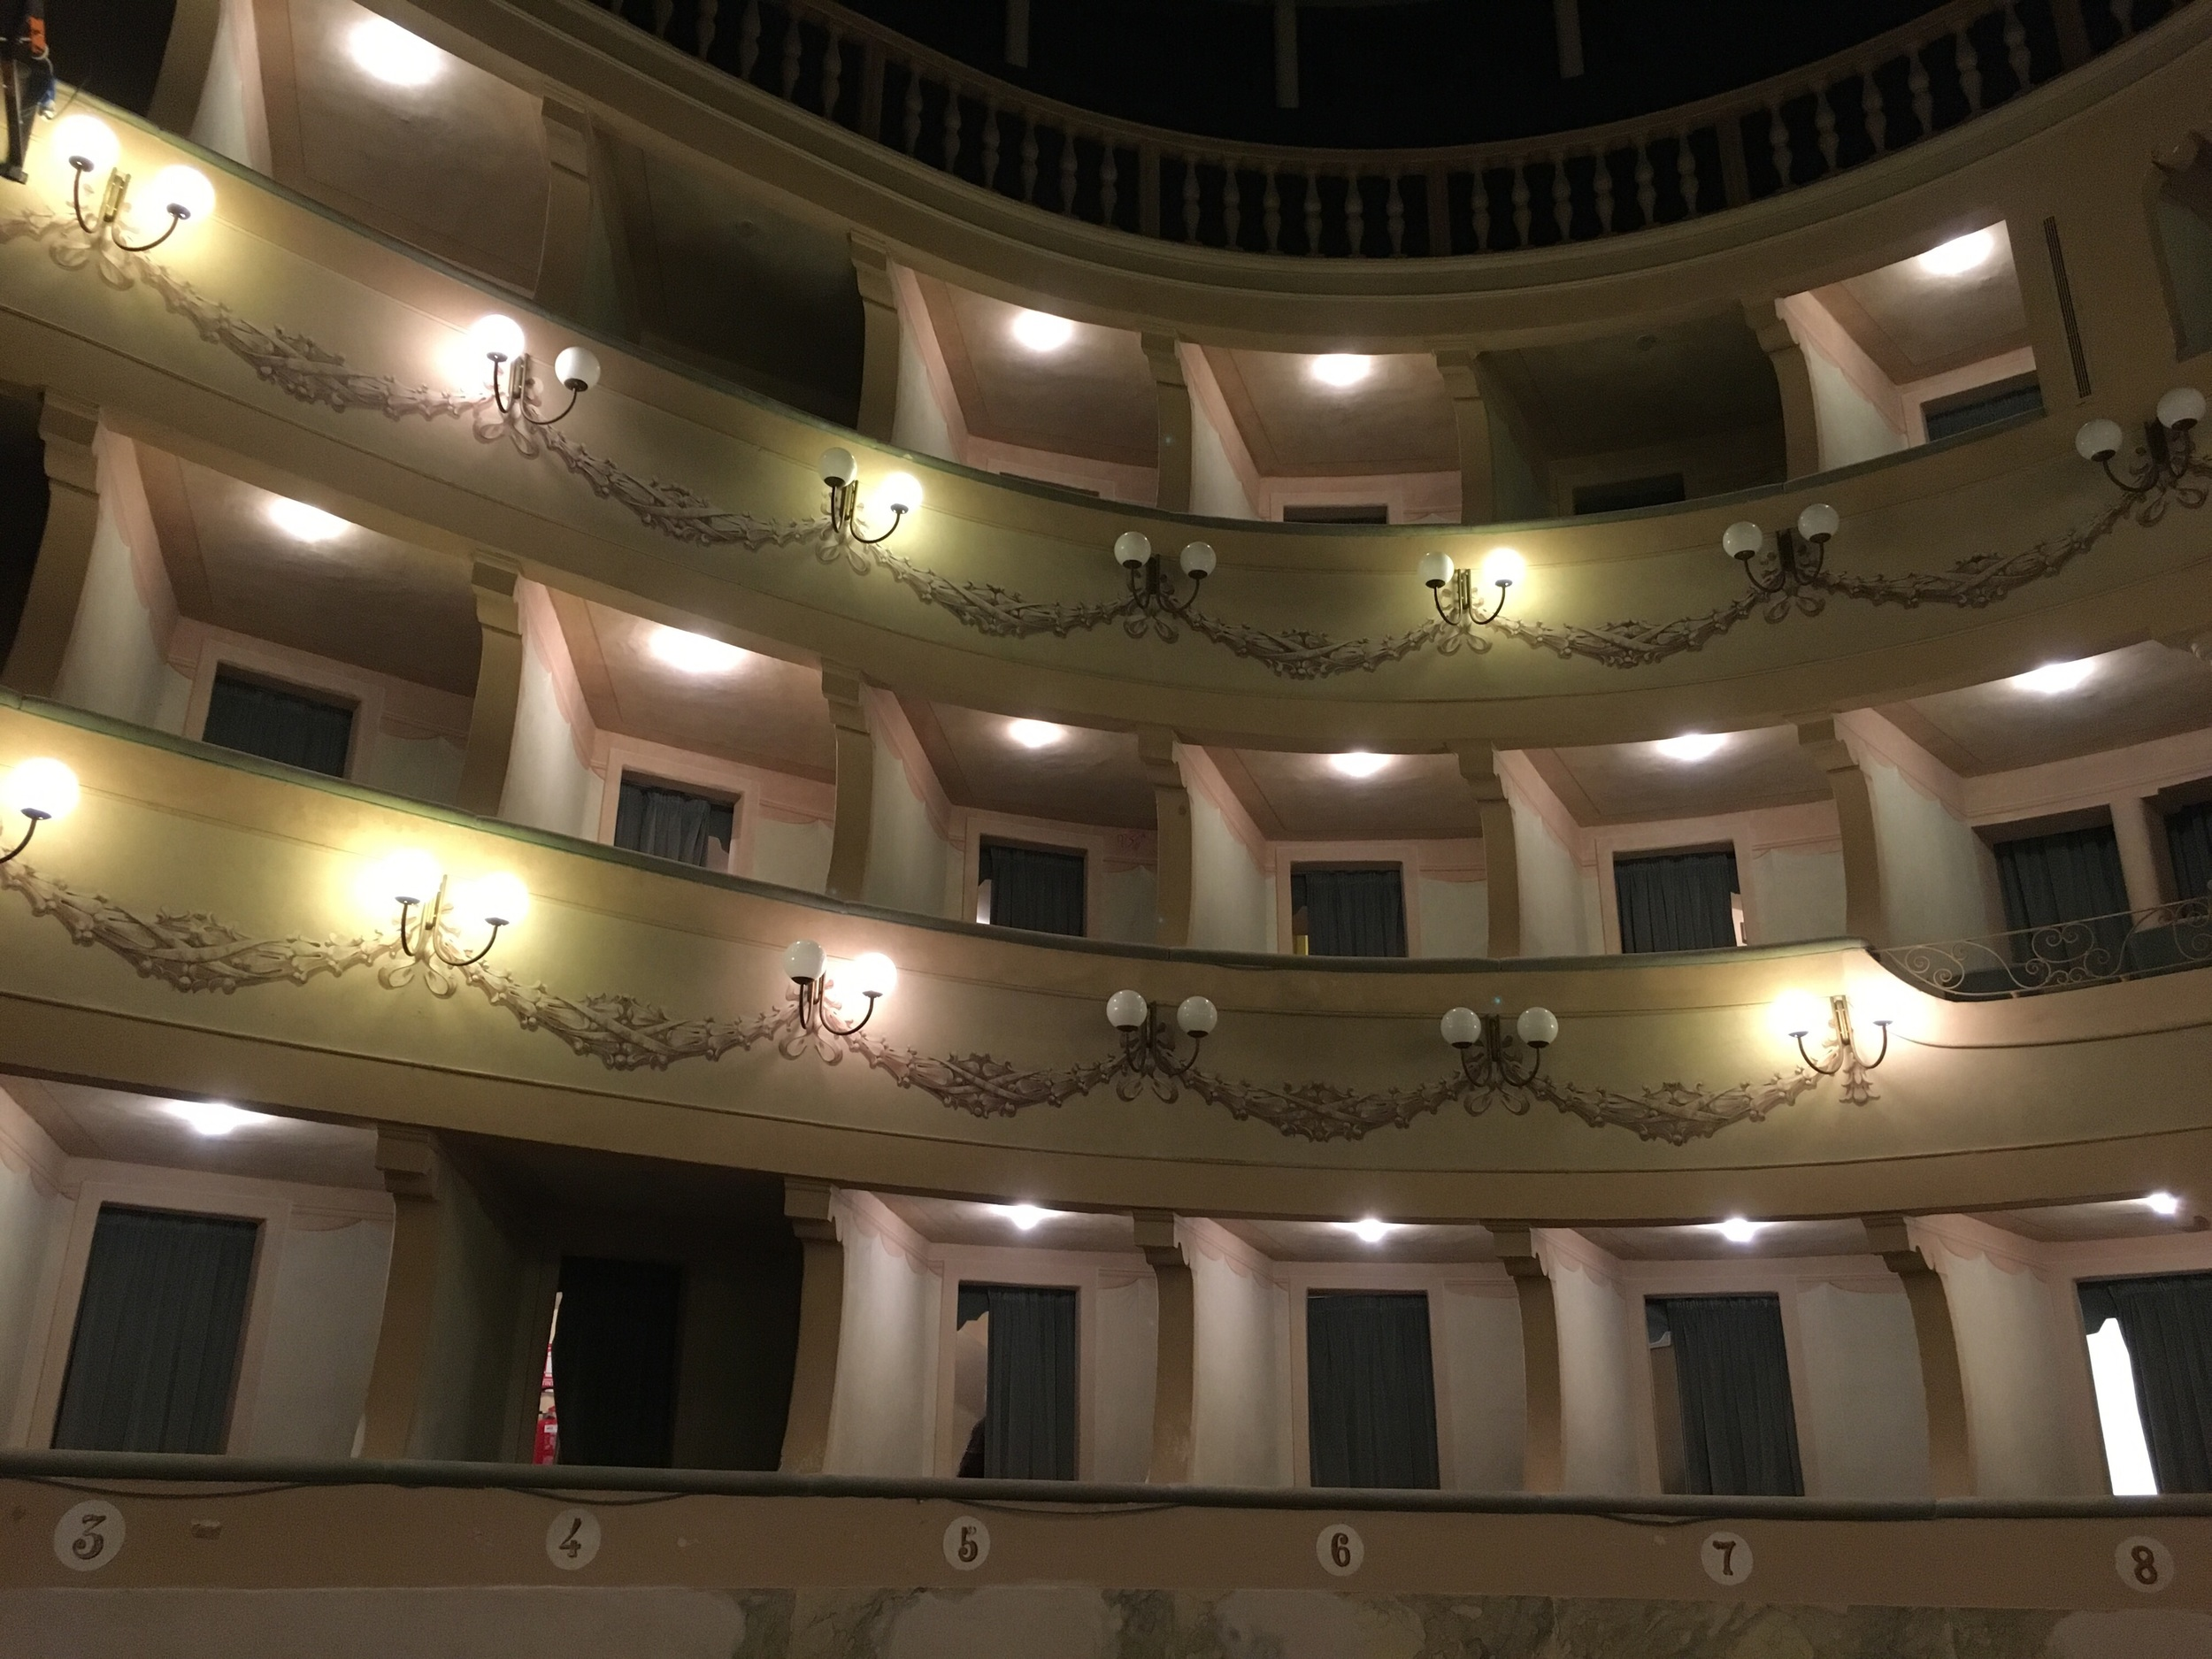 This theater was one of the first horseshoe-shaped designs. This is a view of the boxes.